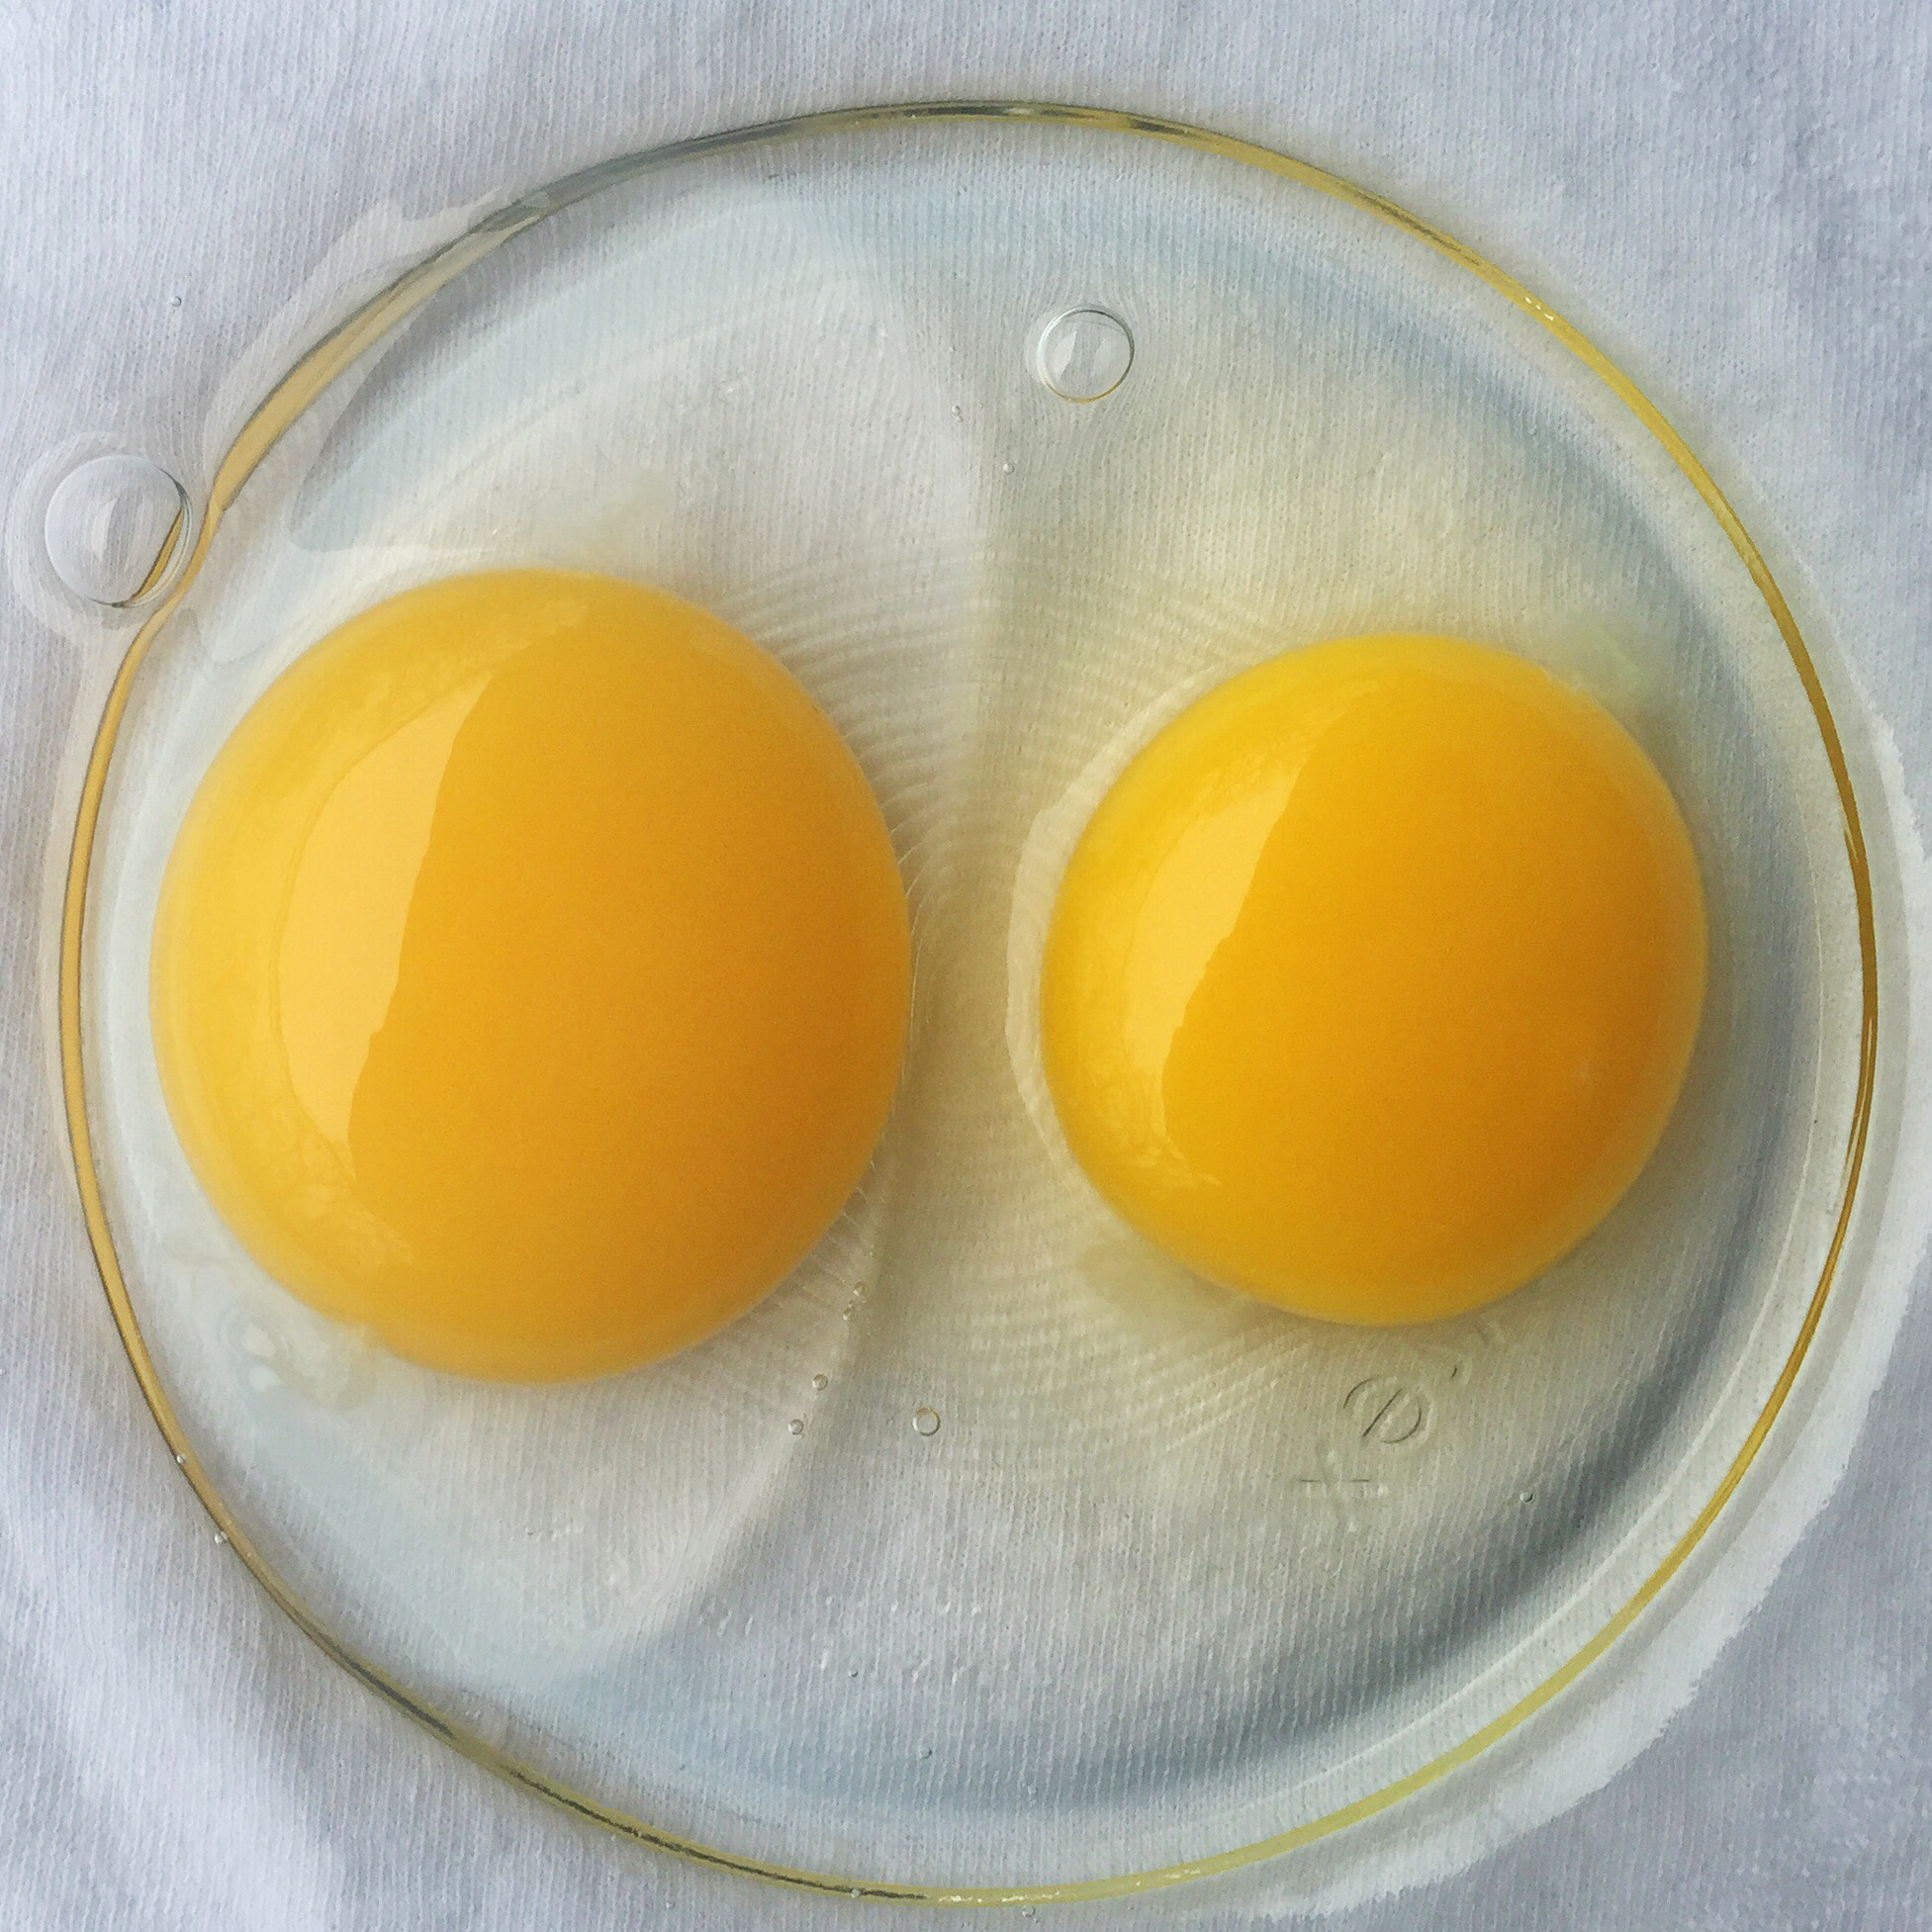 From Midnight To Duck Egg See: The Benefits Of Duck Eggs